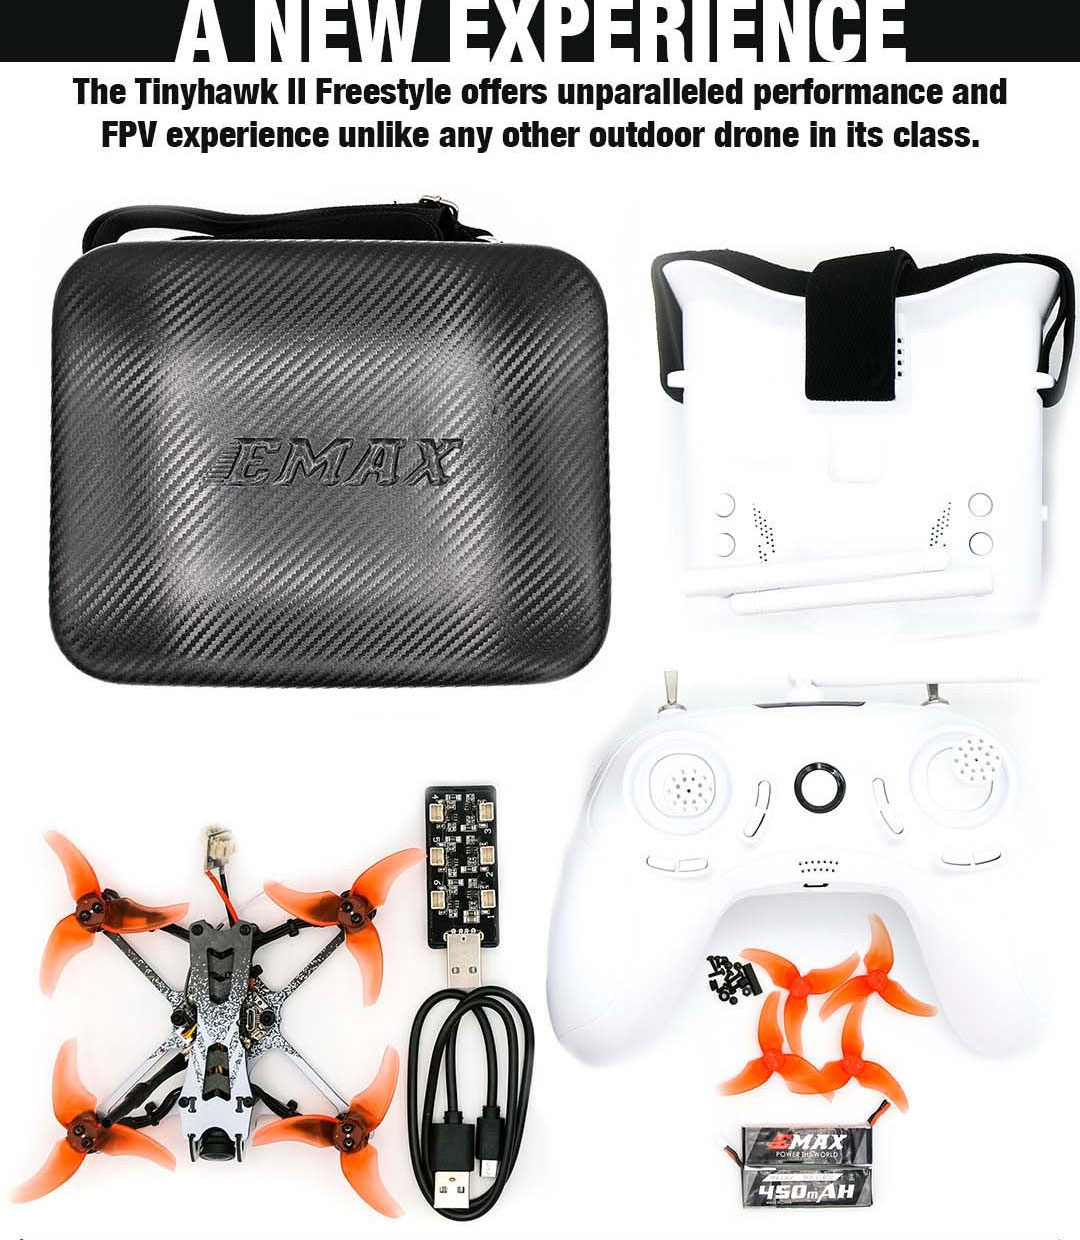 EMAX Tinyhawk II Freestyle 2.5 Inch FPV Racing Drone  5A ESC Frsky D8 Runcam Nano 2 Camera with Goggles - RTF